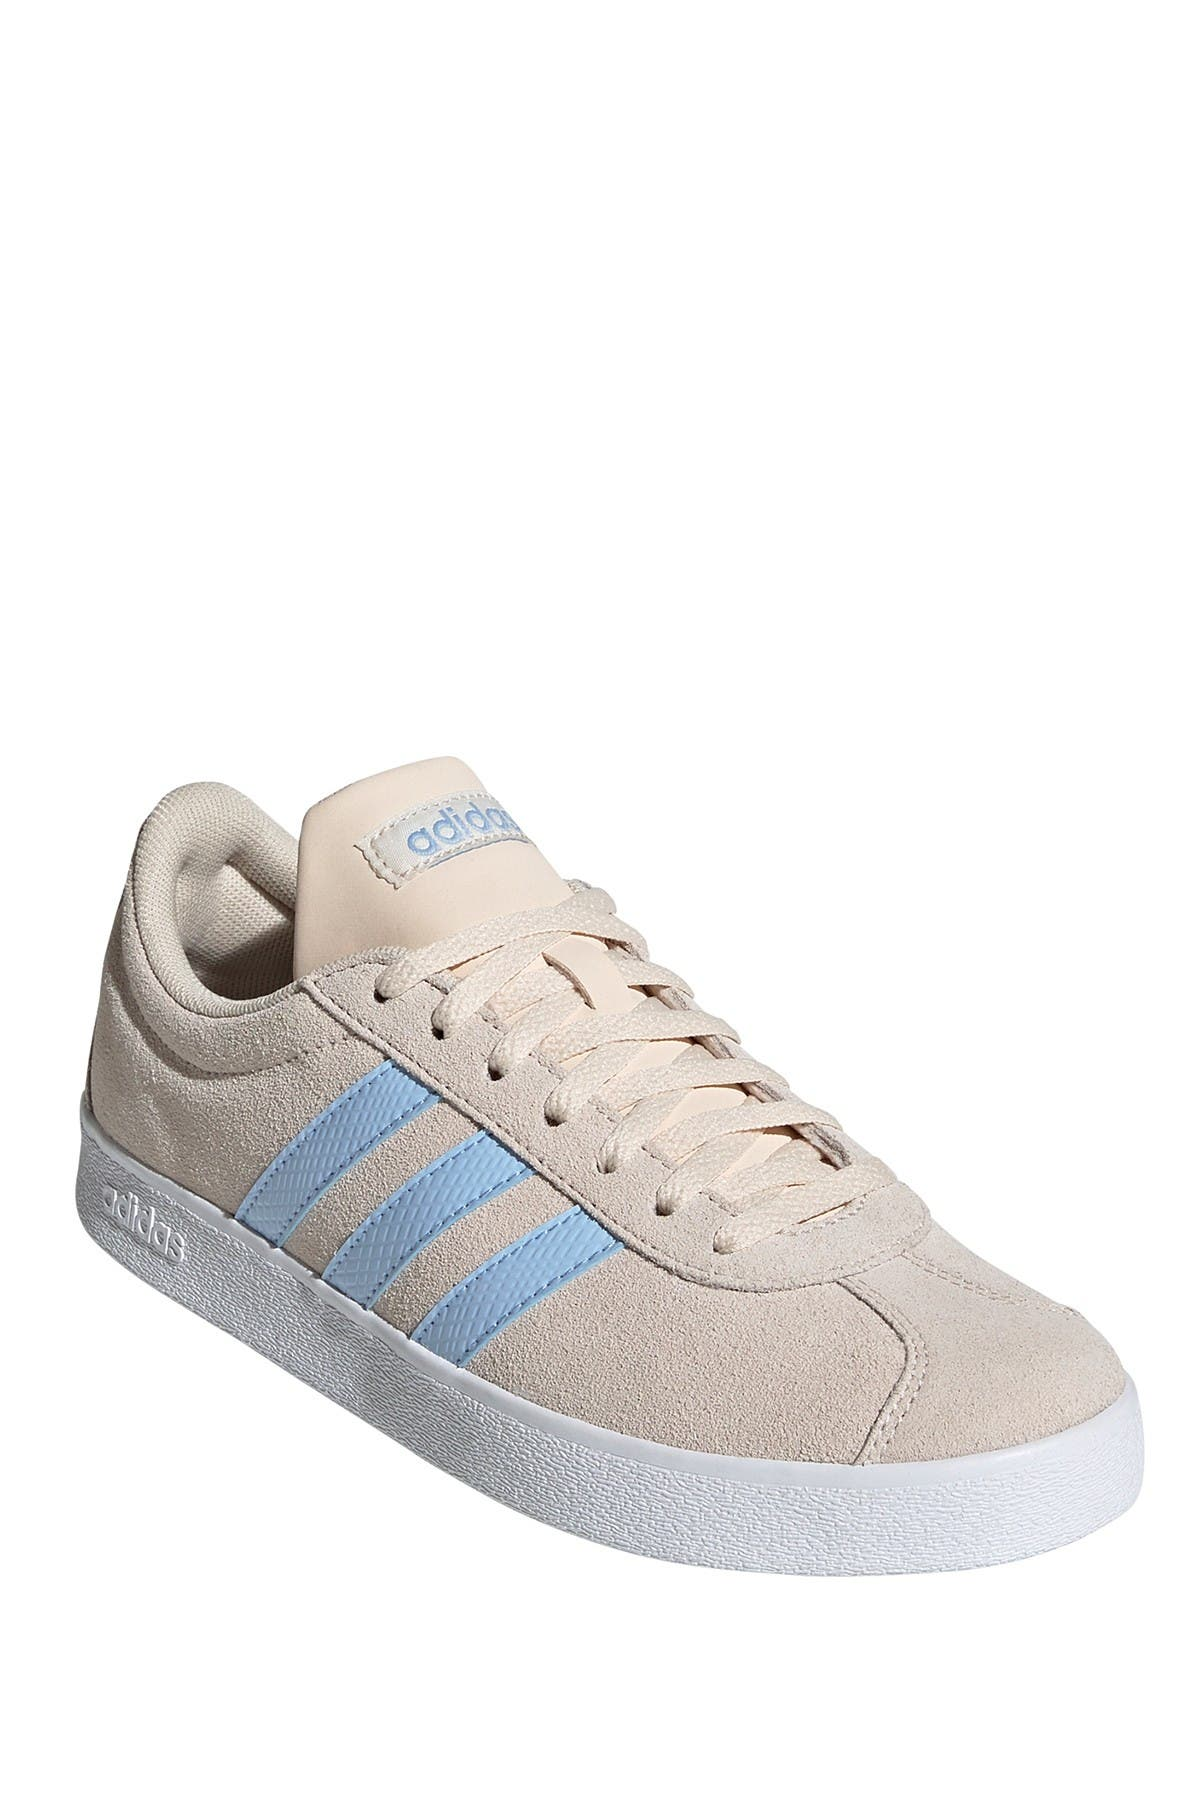 Image of adidas VL Court 2.0 Suede Sneaker